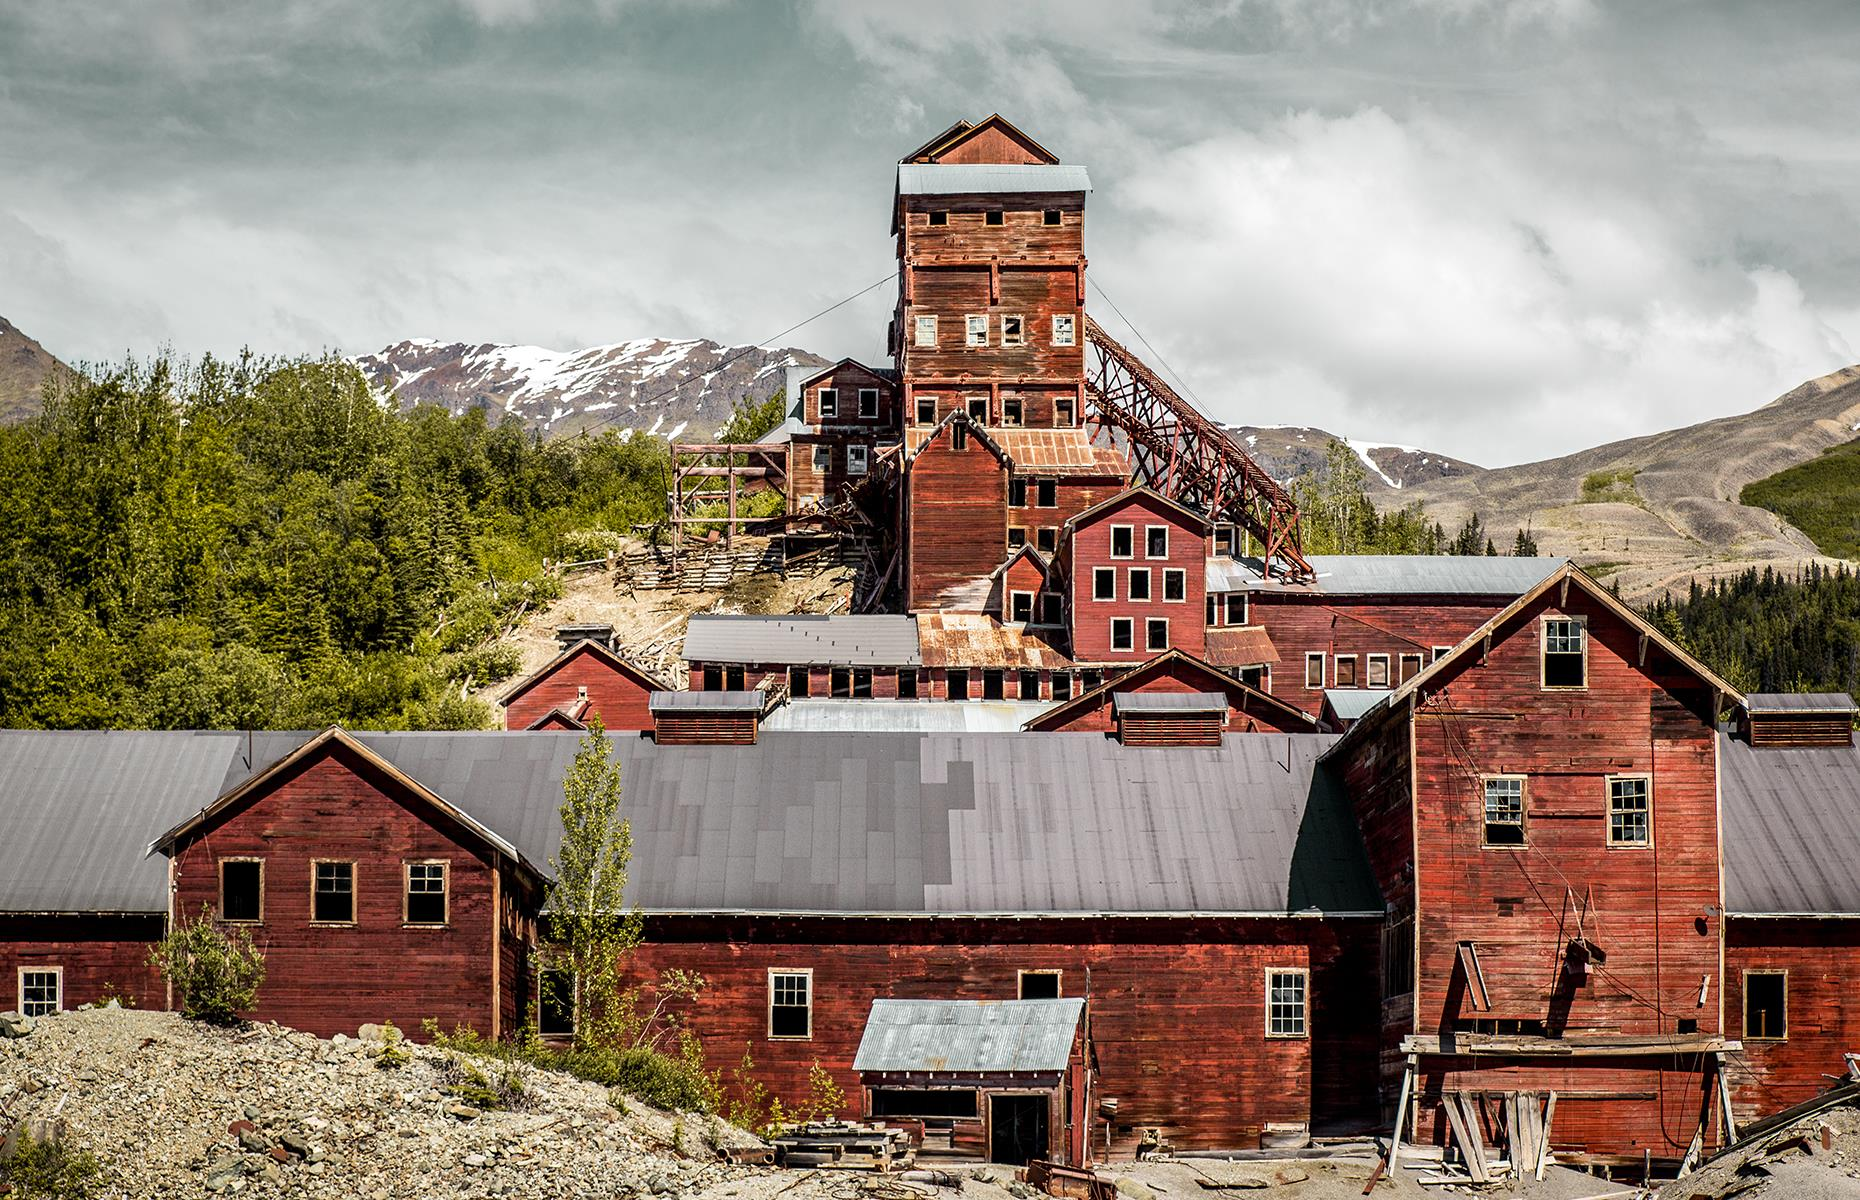 Slide 65 of 68: Located about 6.5 miles (10km) east of the Kennicott Glacier, Kennecott was a mining camp, central to several copper mines. The town was built in 1911 and by 1916 the mines produced copper ore valued at $32.4 million. However, the high-grade ore started to run out in the late 1920s and the first mine closed in 1929 with the rest following the same fate. The last train departed from Kennecott on 10 November 1938, leaving it abandoned.